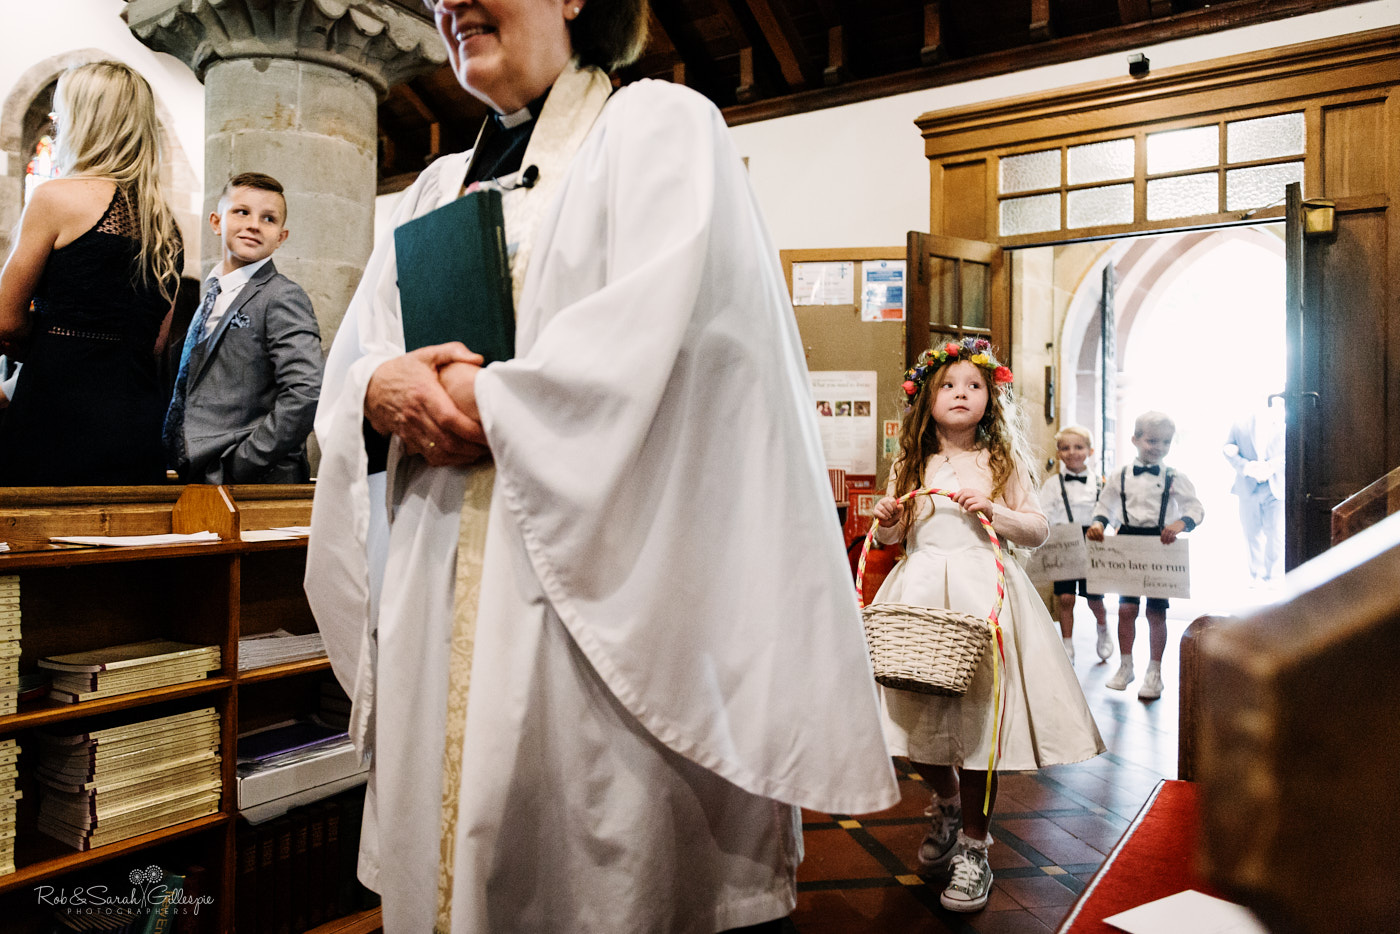 Flowergirl enters wedding ceremony at St Leonard's church in Clent